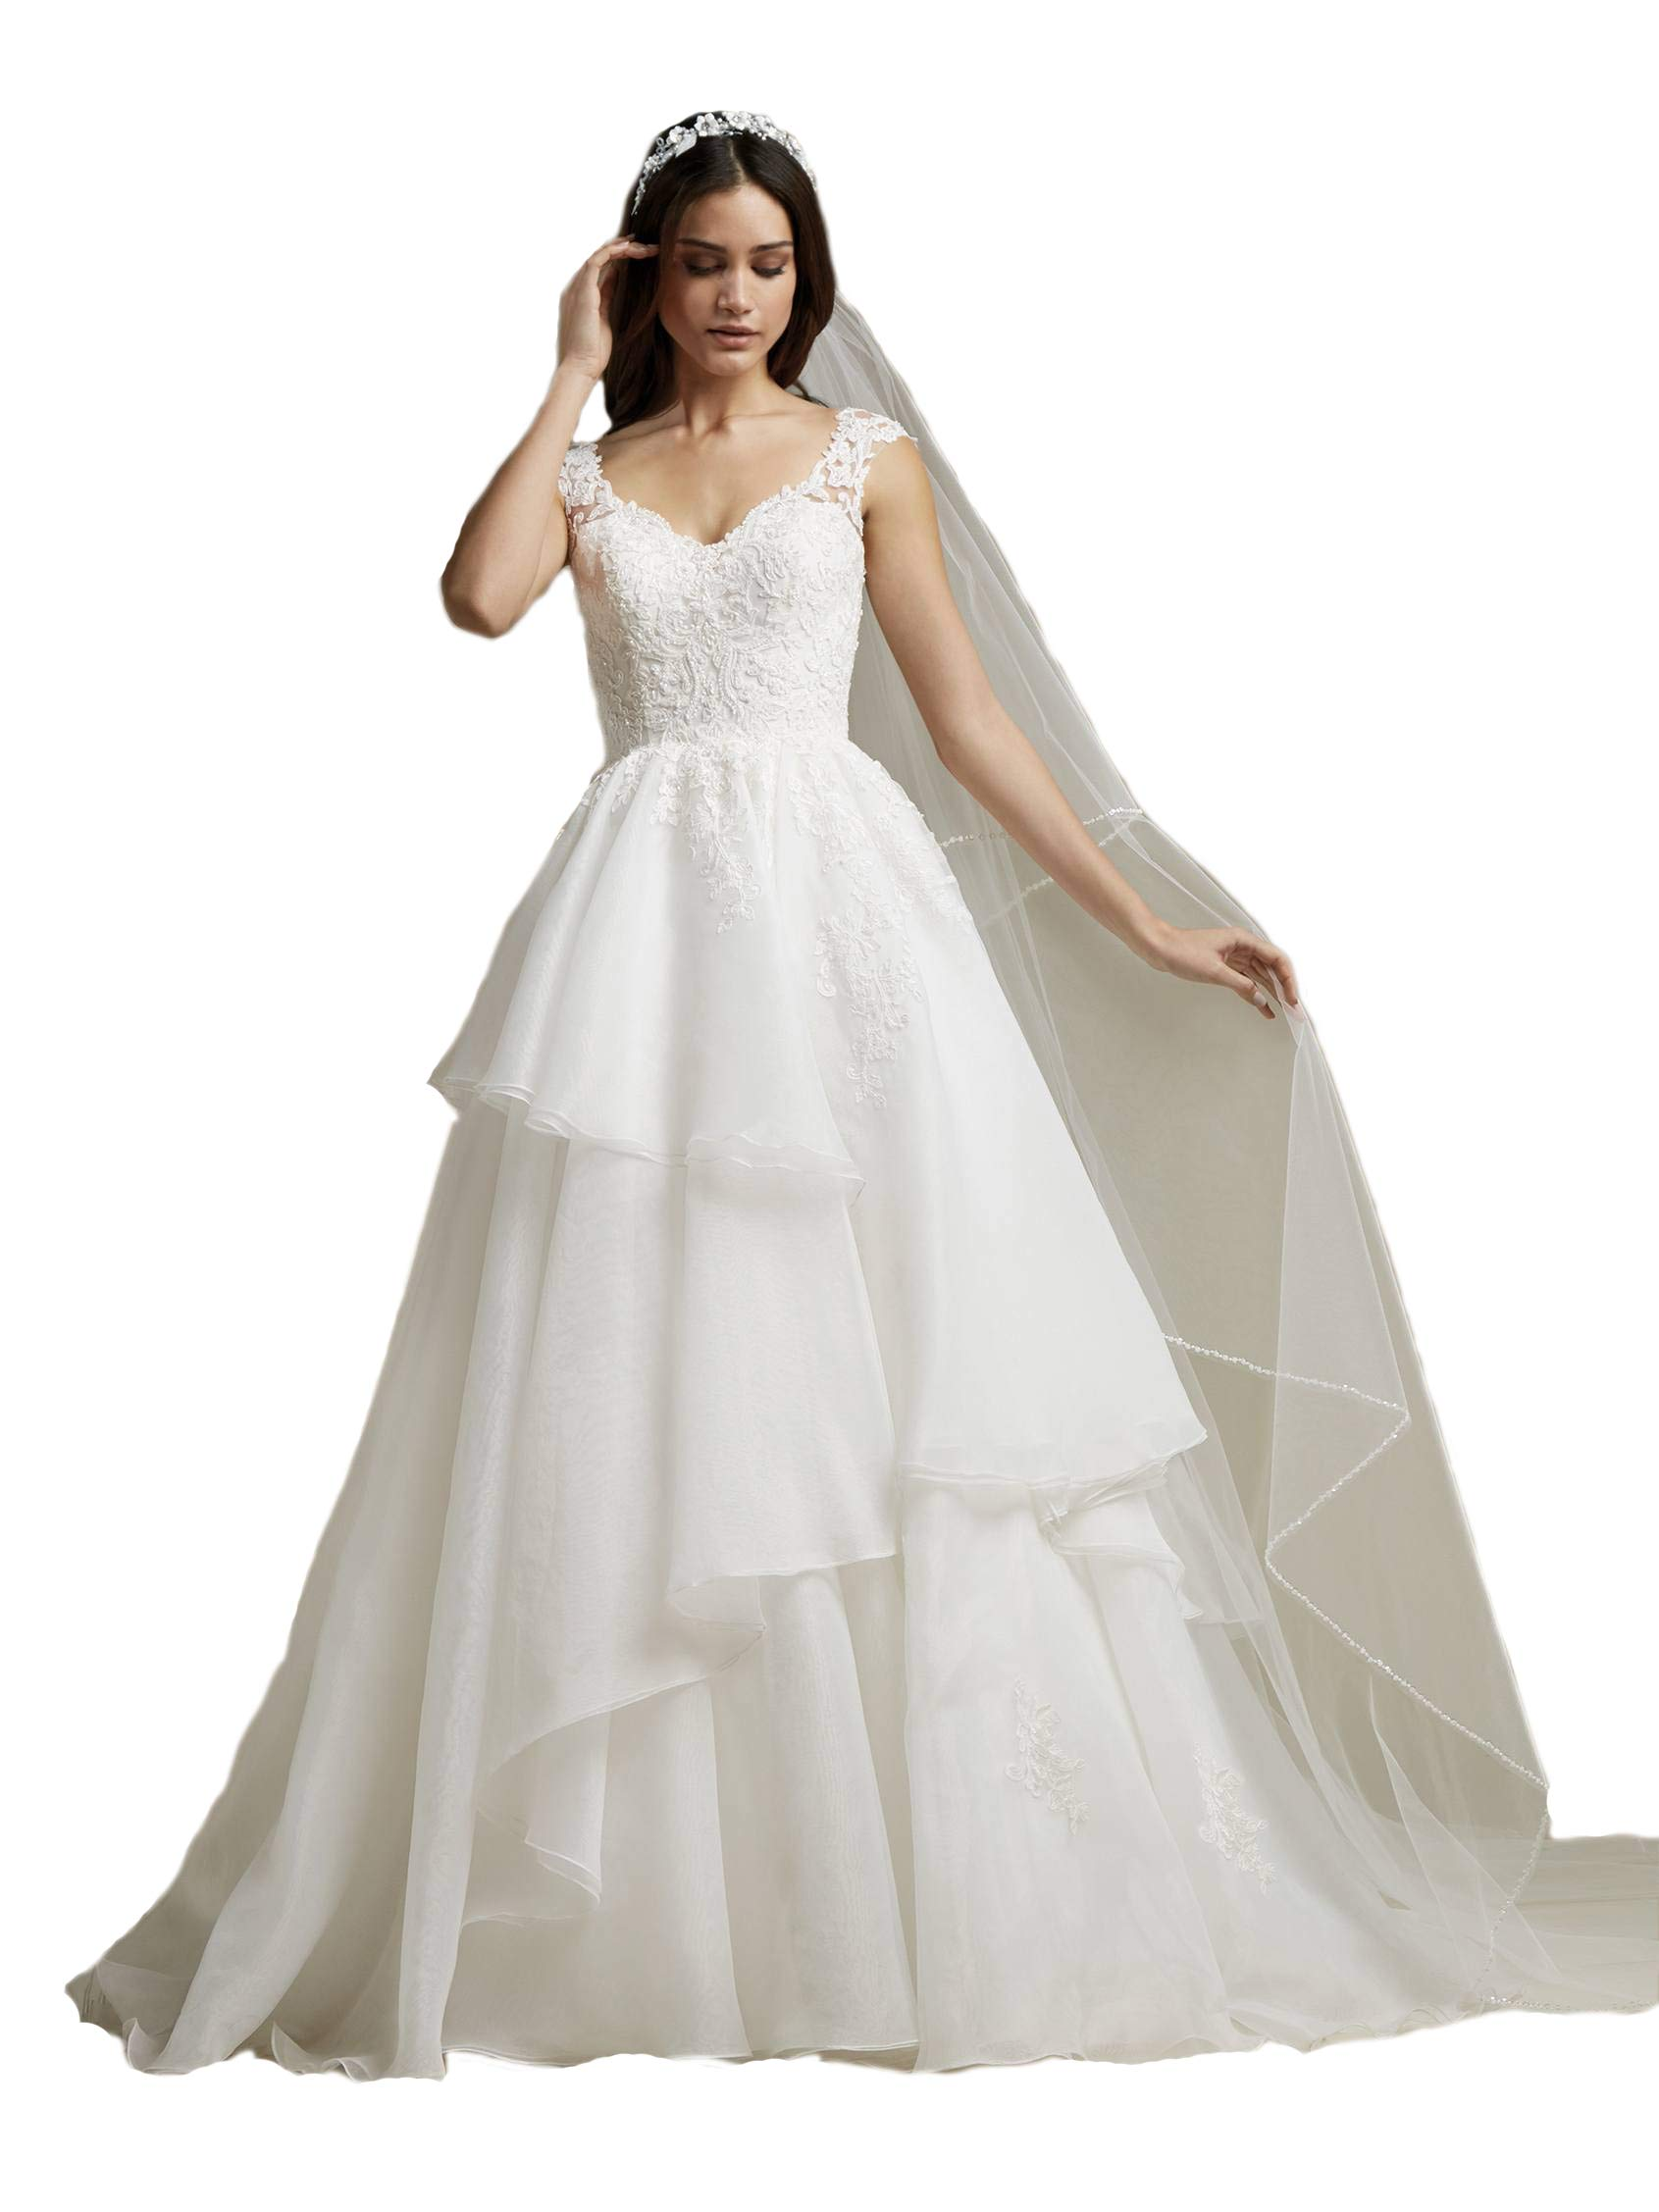 Passat Pale Ivory Single-Tier 3M Cathedral Veil Edged with Clear Beads and Crystals VL-1013 by Passat